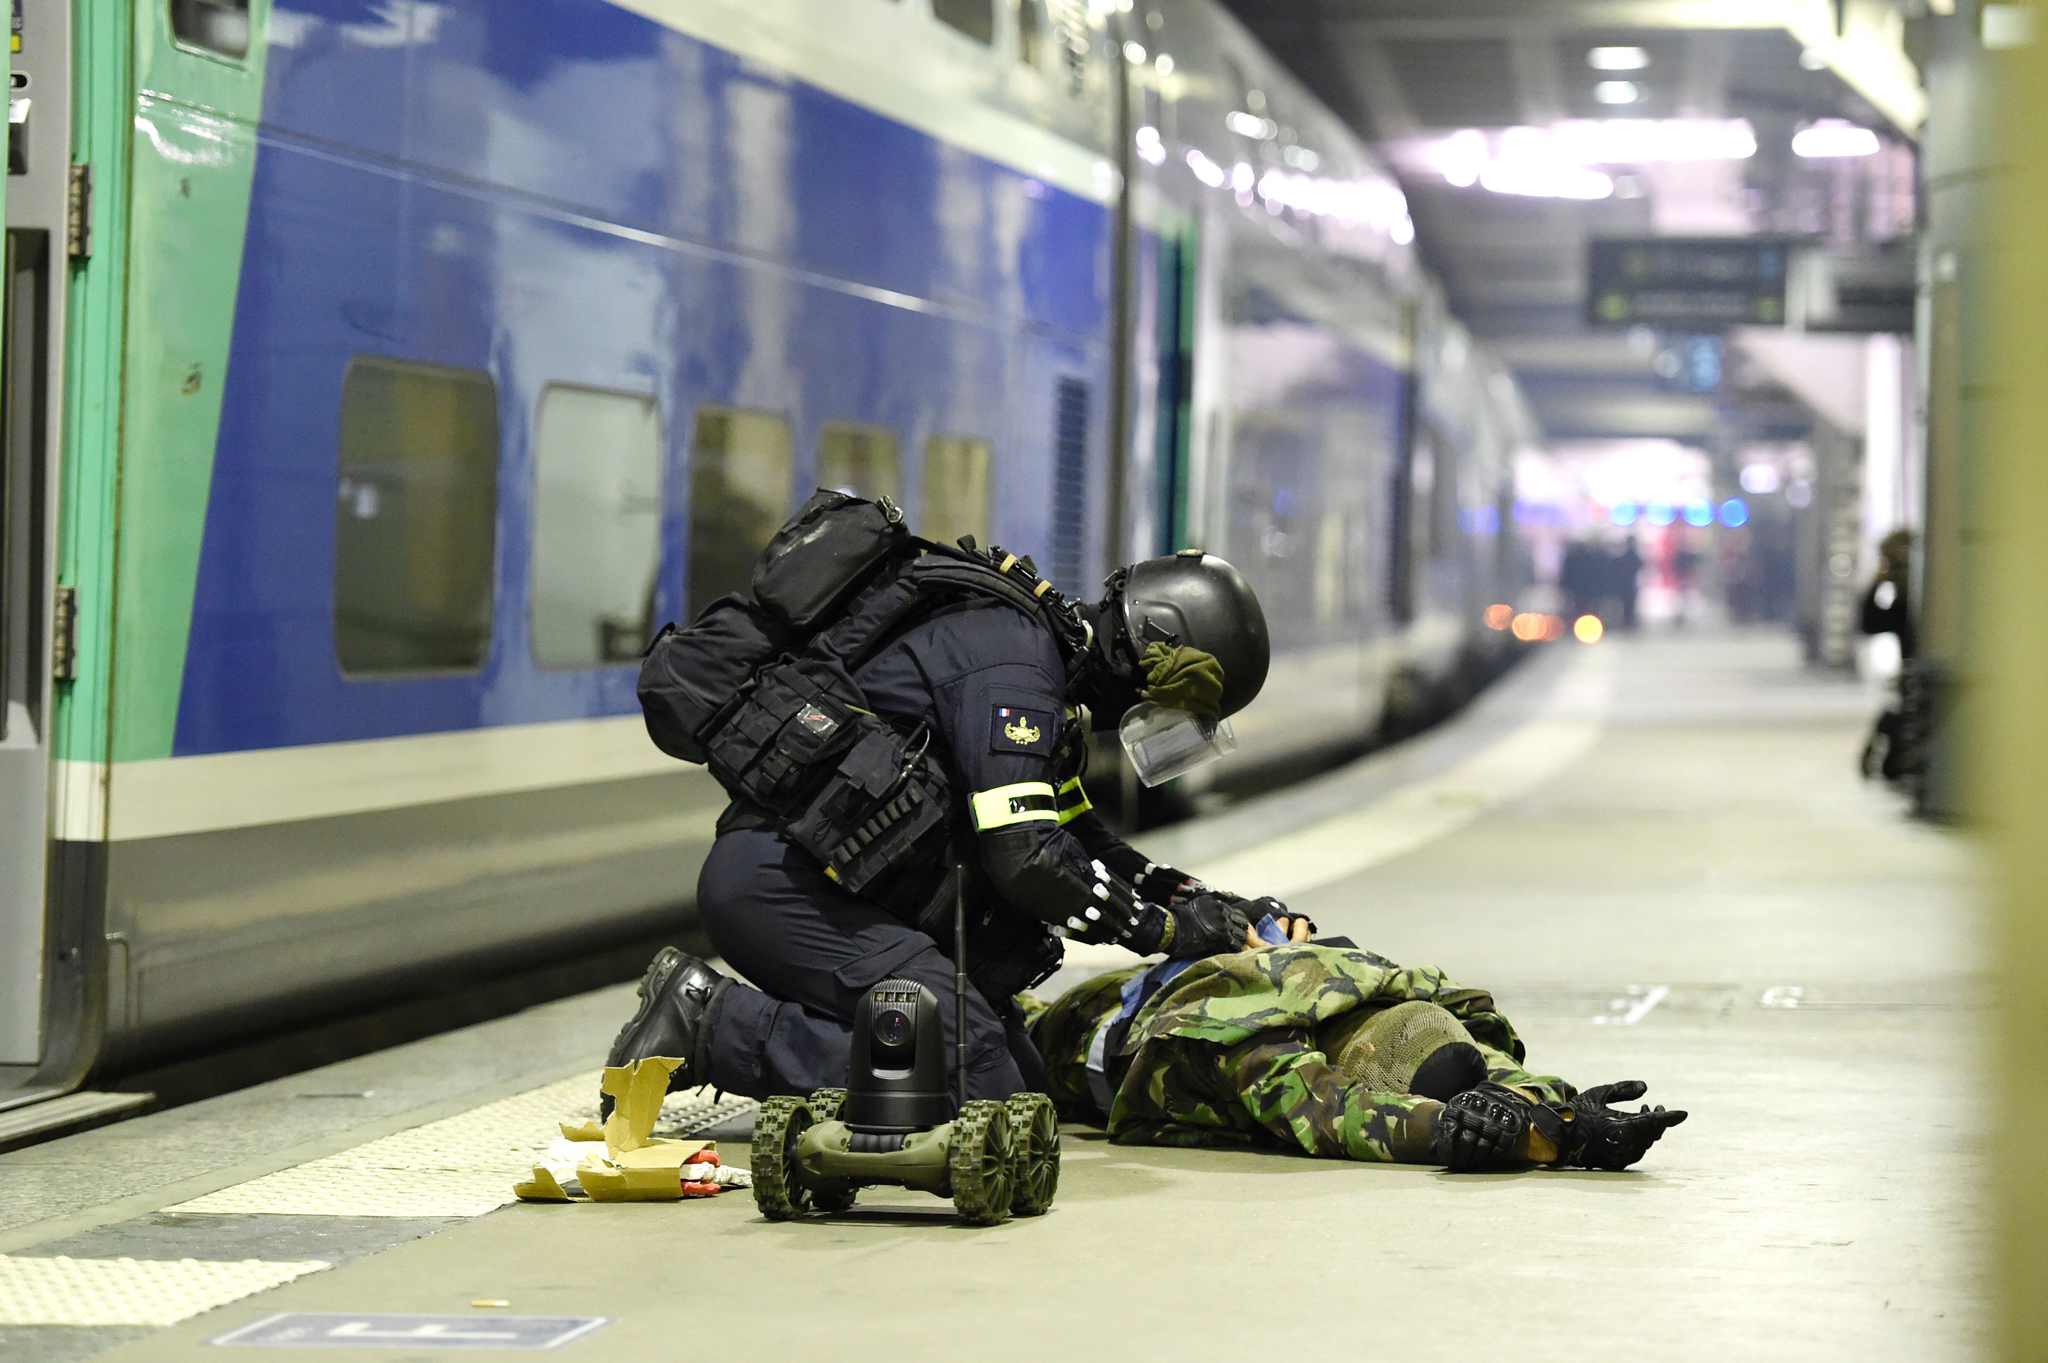 A member of the National Gendarmerie Intervention Group (GIGN) deactivates a bomb from a supposed terrorist during a training exercise in the event of a terrorist attack in collaboration with Recherche Assistance Intervention Dissuasion (RAID) and Research and Intervention Brigades (BRI) in presence of the French Interior minister Bernard Cazeneuve at la Gare Montparnasse, center Paris